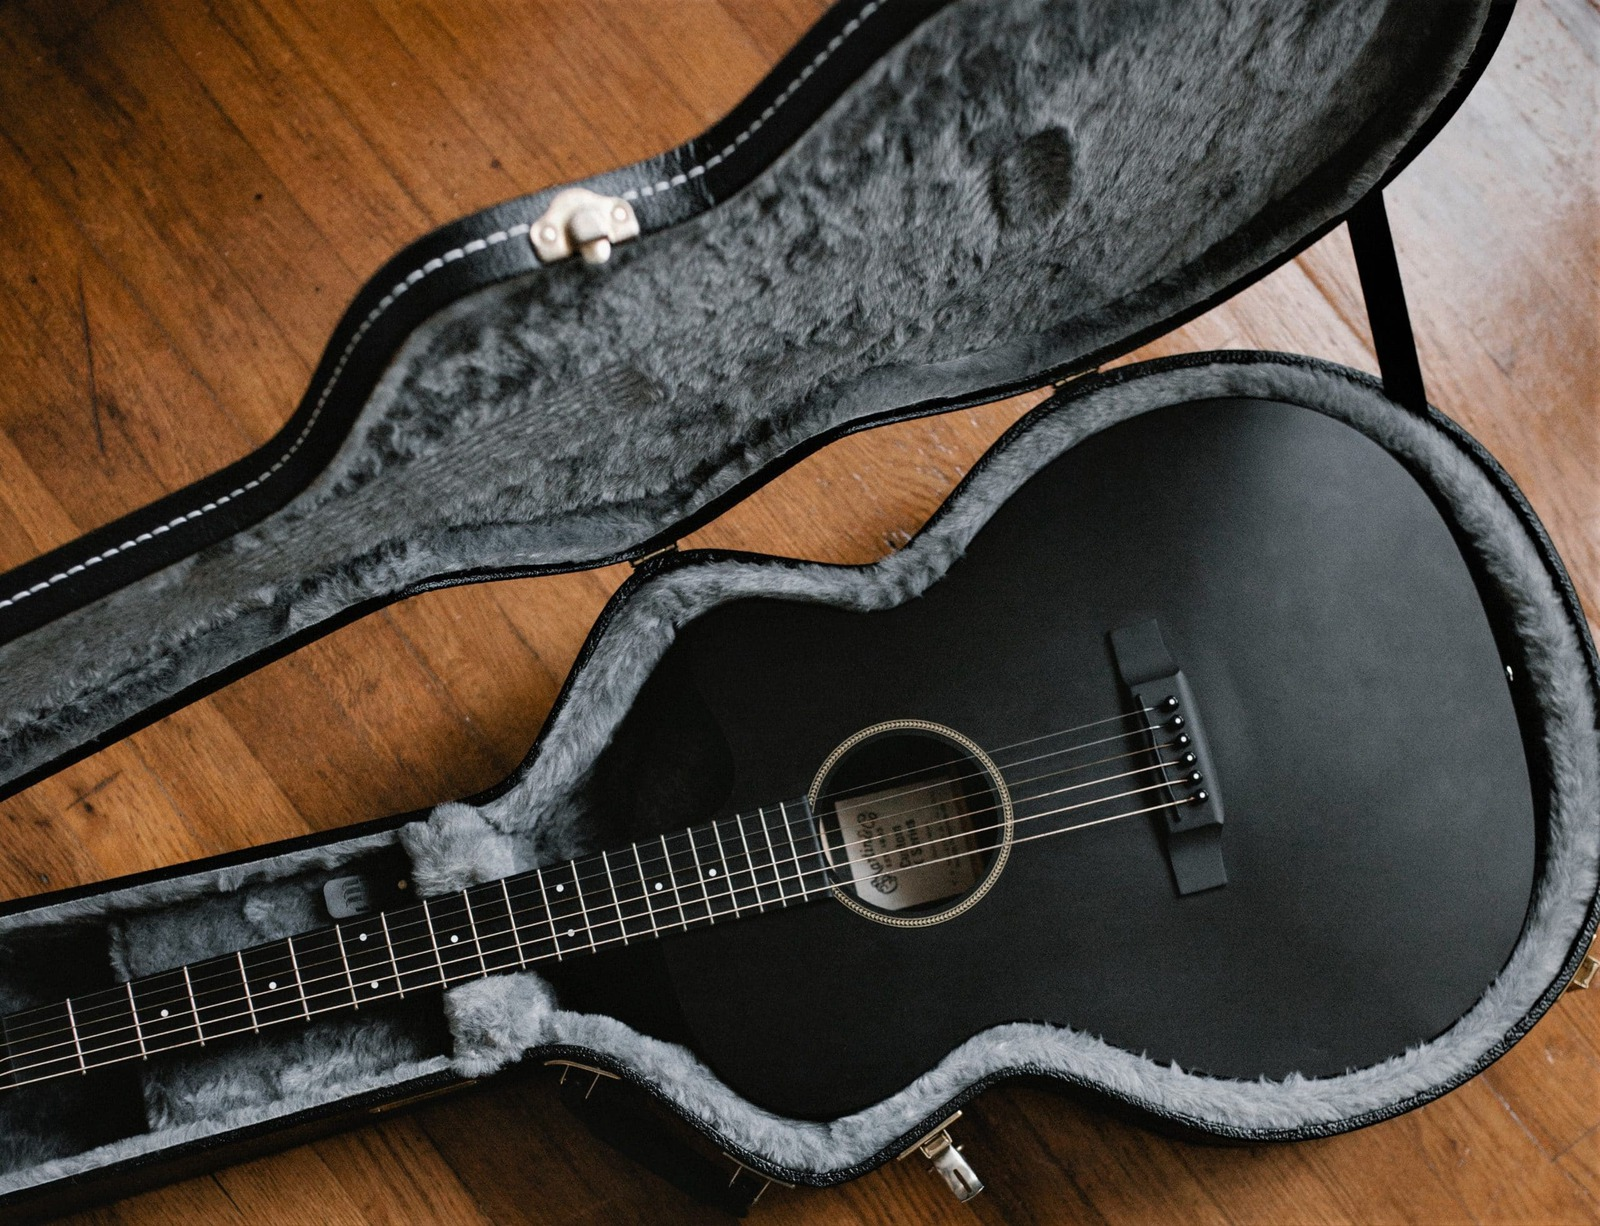 5 Best Acoustic Guitar Cases in 2020 – Buyer's Guide